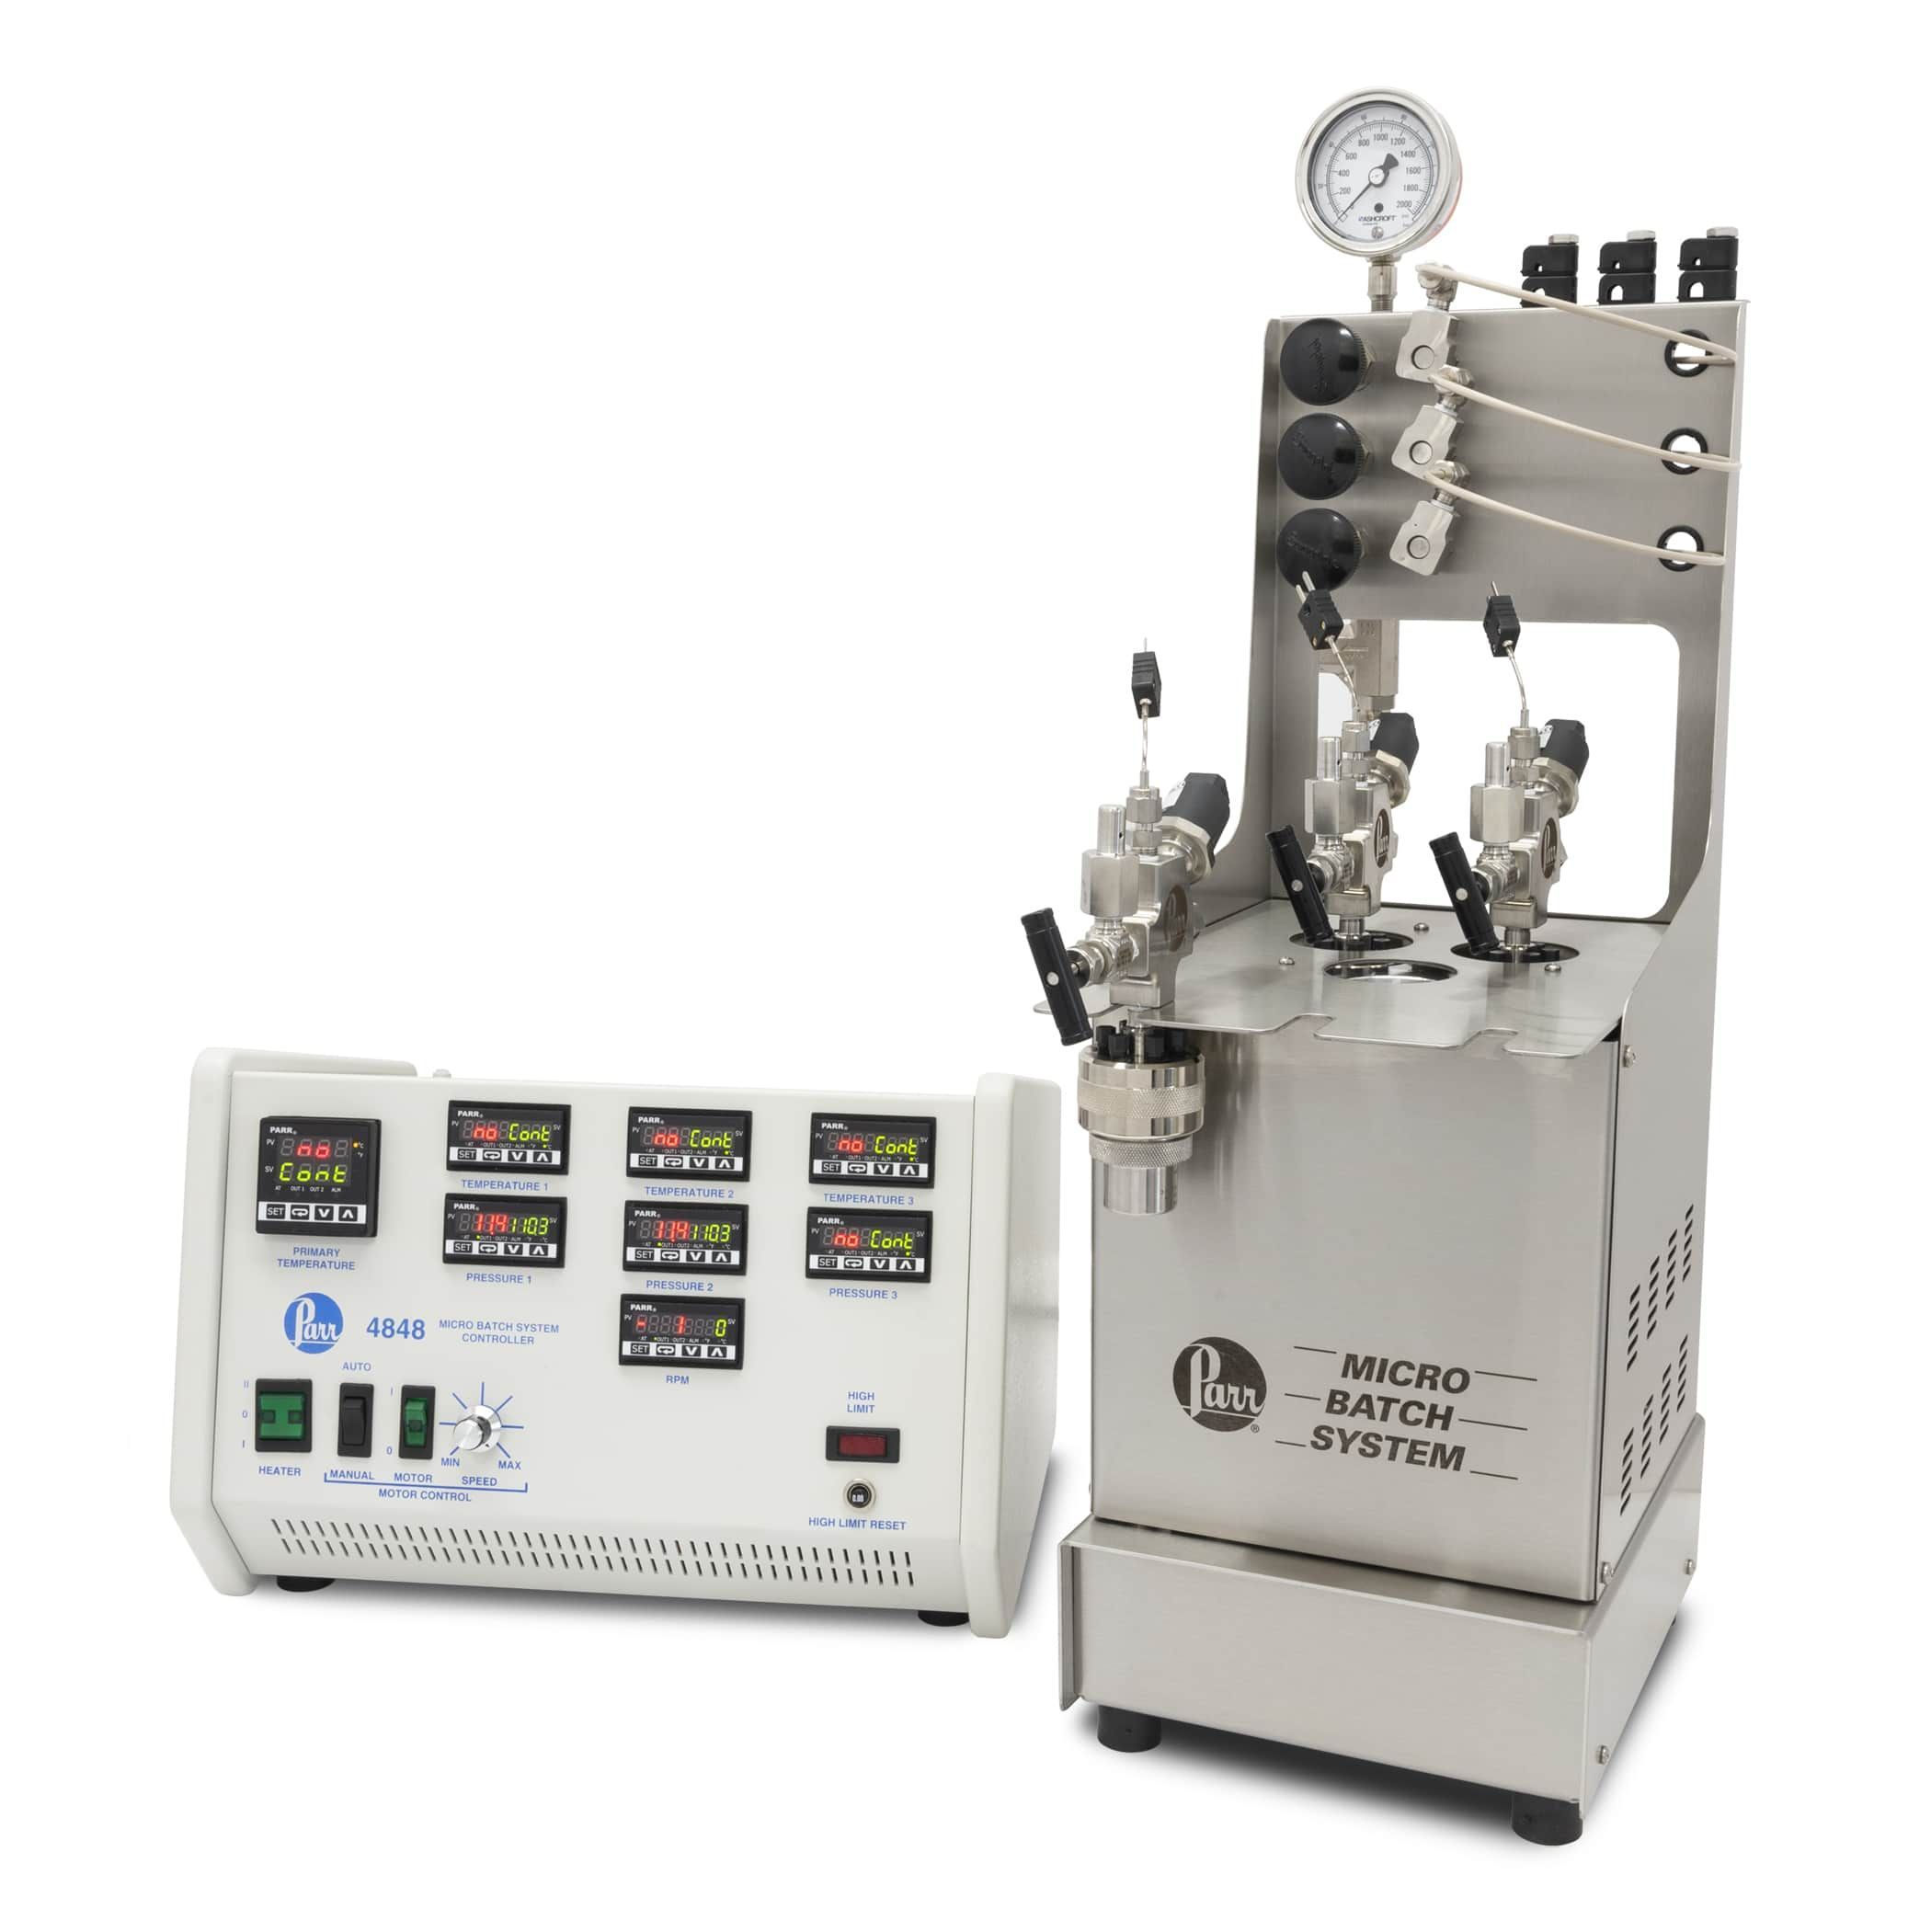 Parr Instrument Company- Series 2500 Micro Batch System